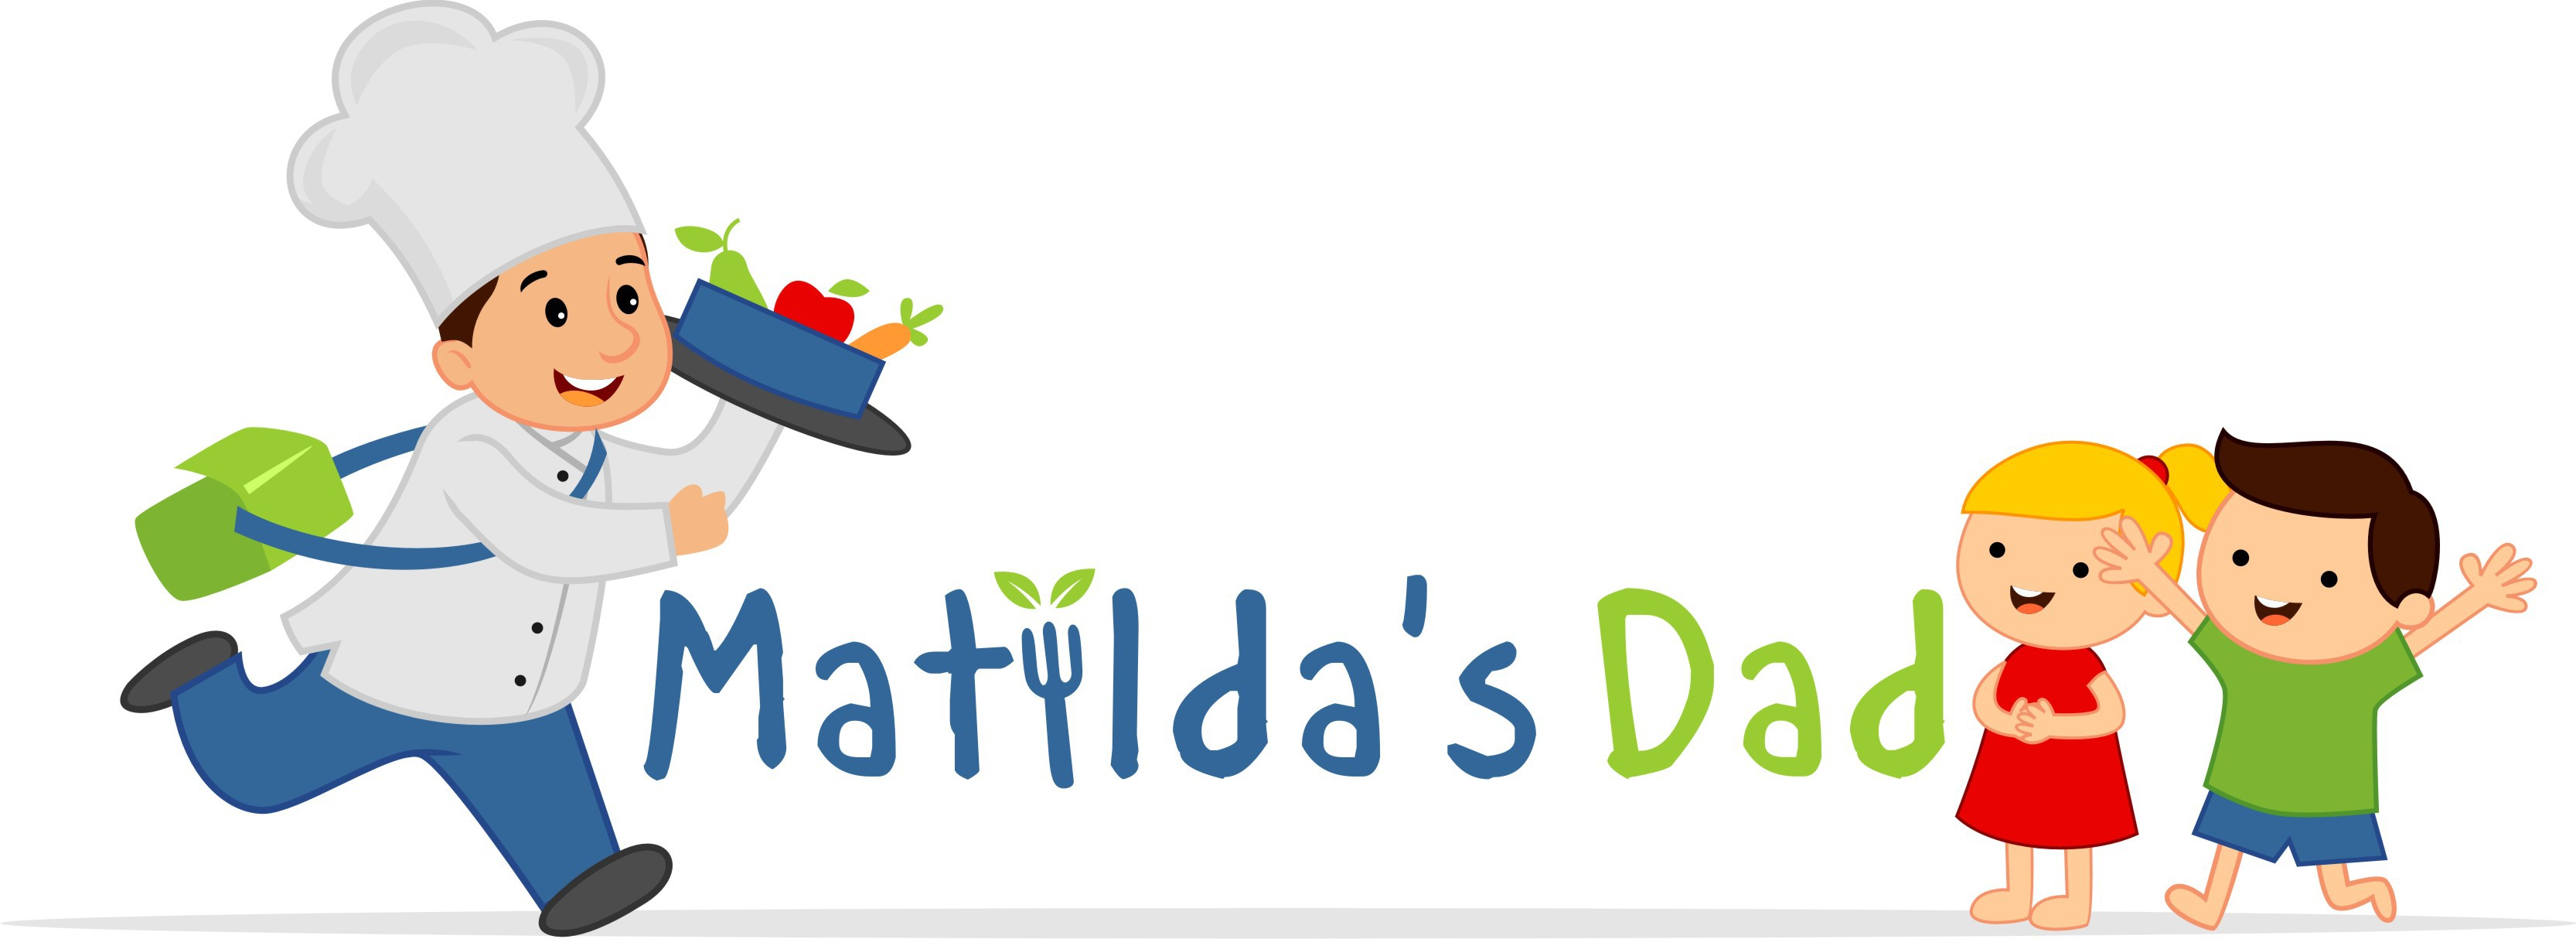 Create a logo that both communicates our business and delights for Matilda's Dad